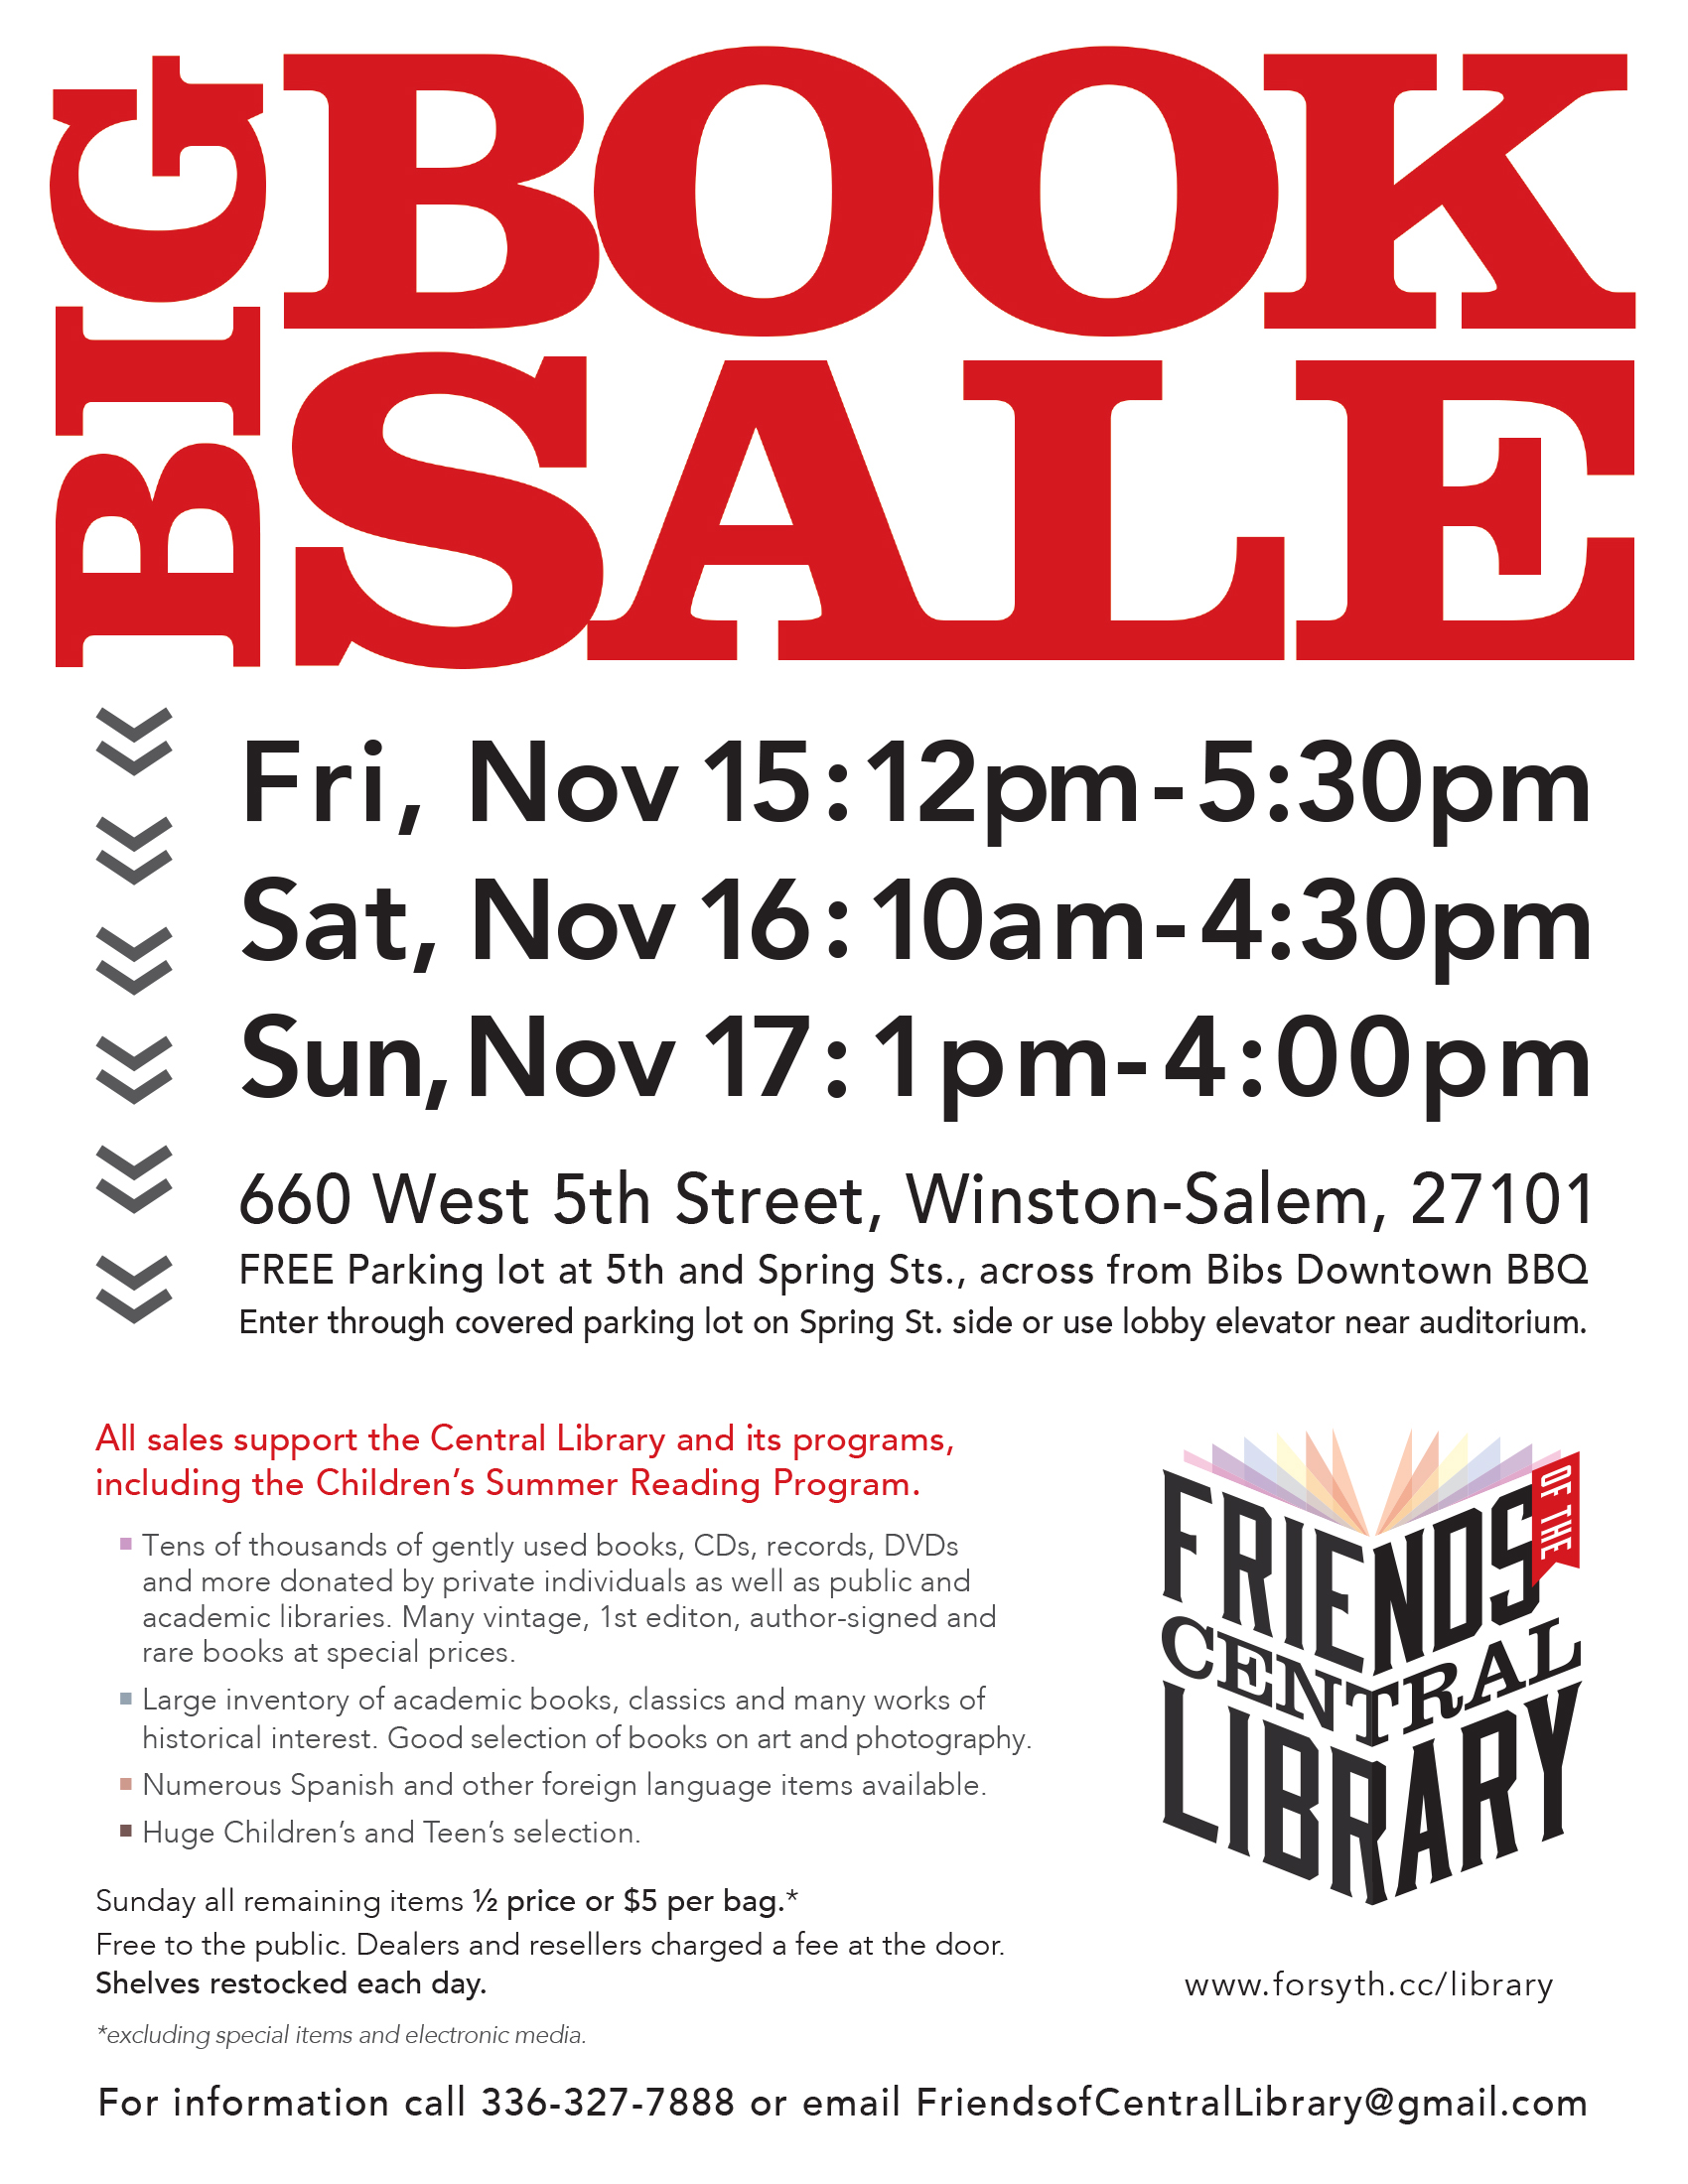 Friends of Central Library Big Book Sale